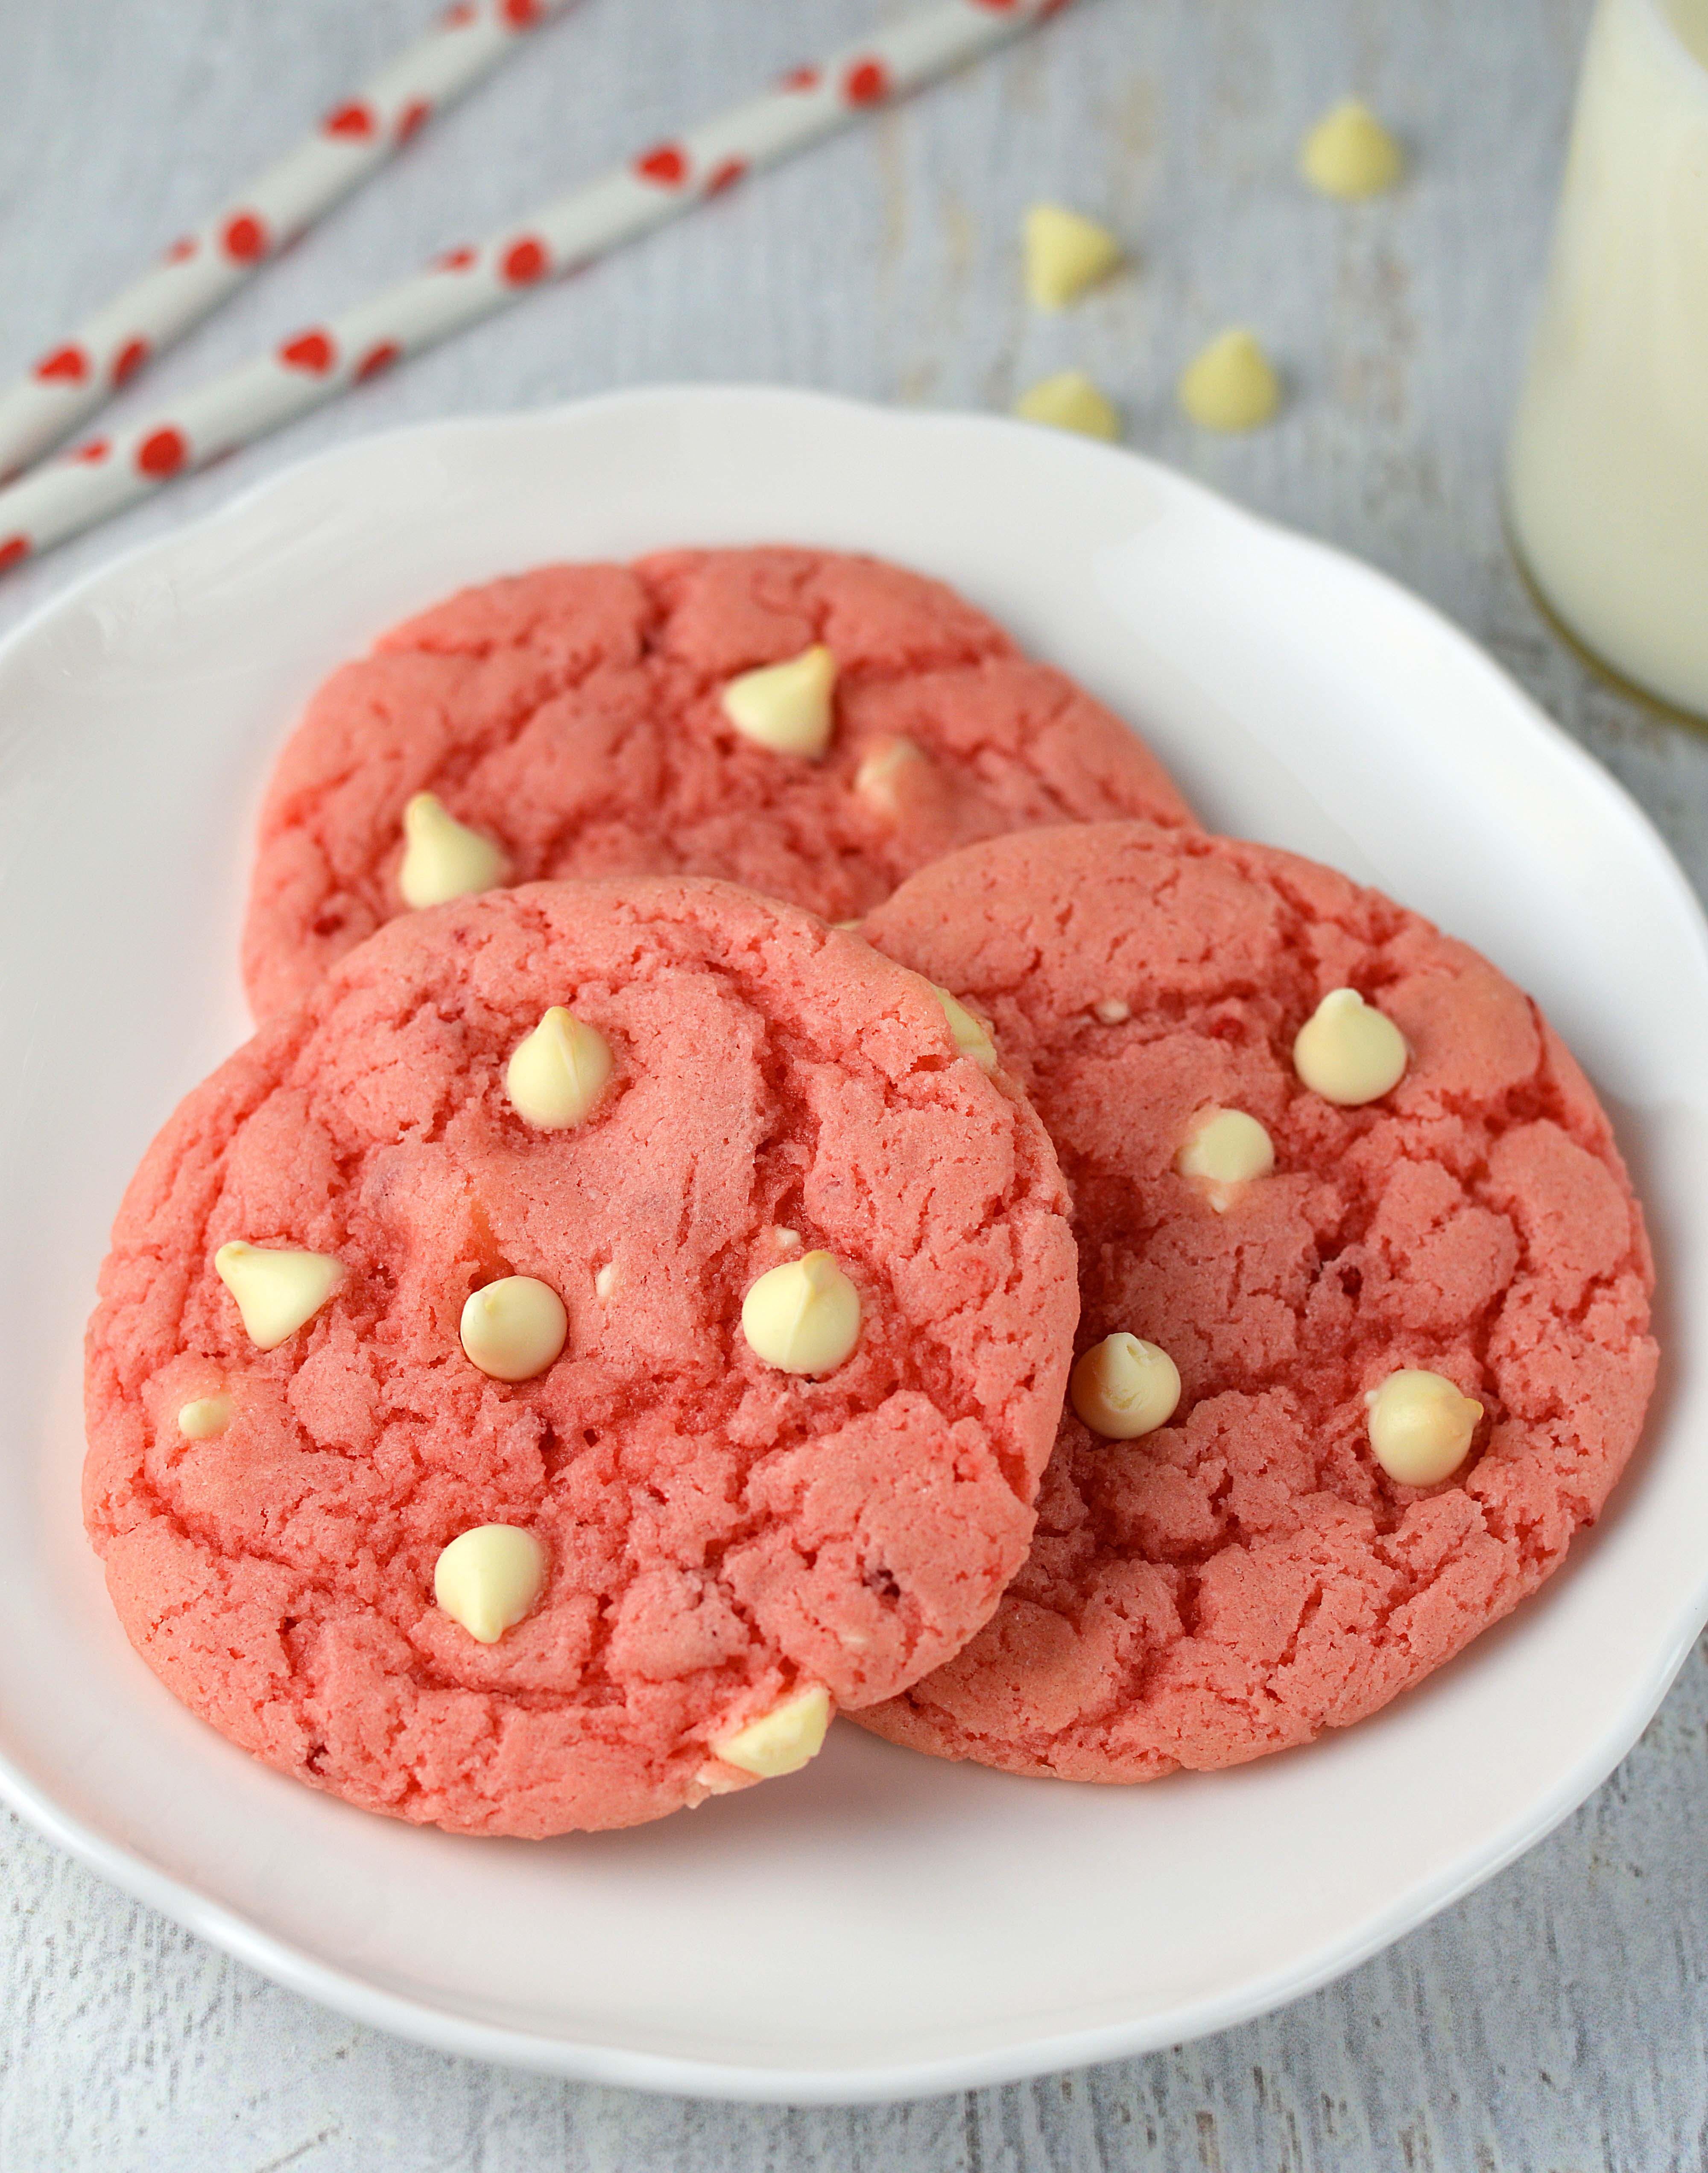 Strawberry Cookie Made With Cake Mix